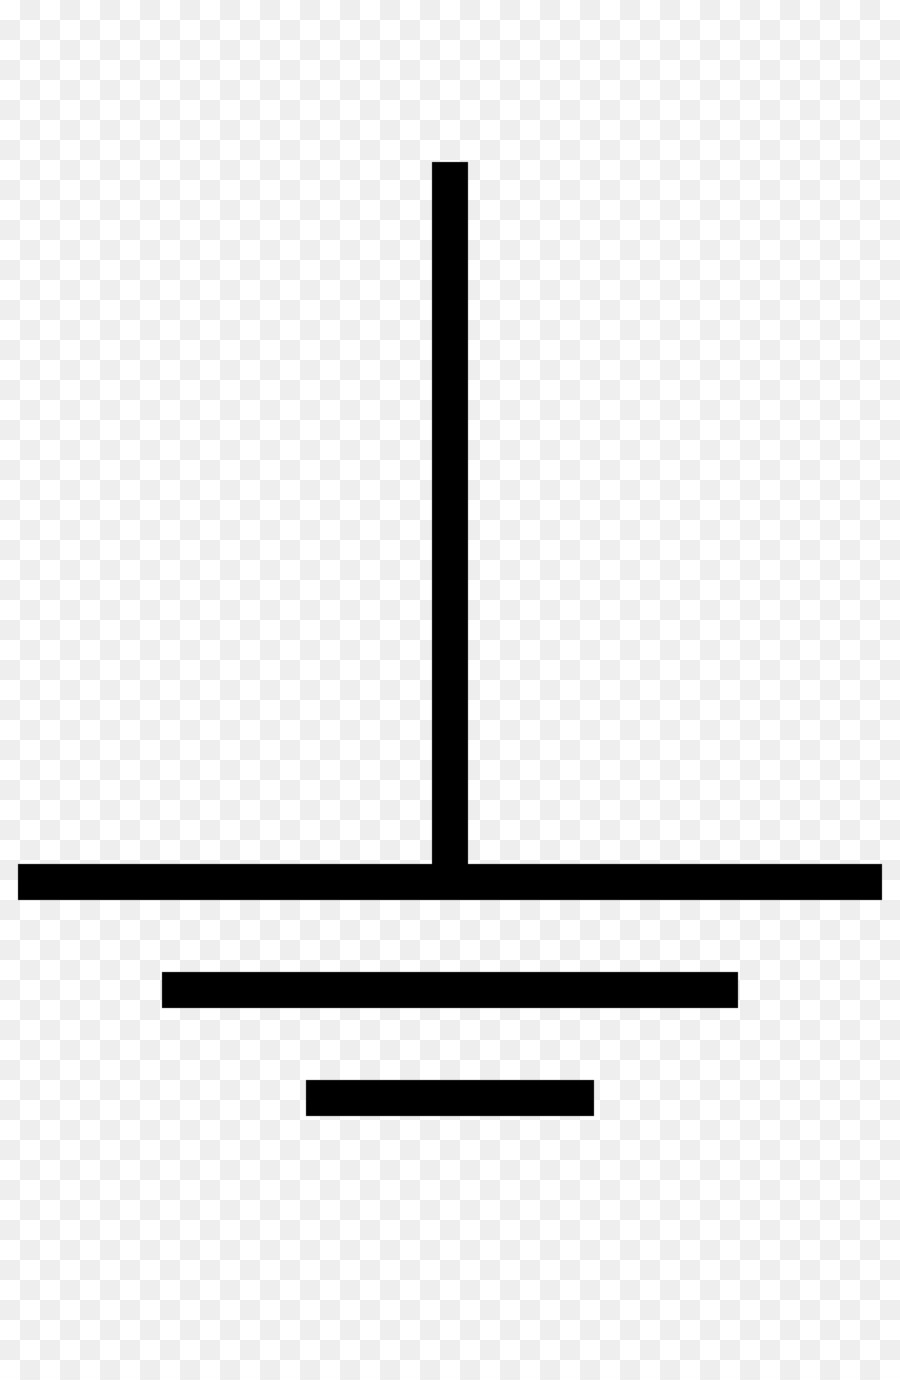 hight resolution of ground electronic symbol circuit diagram black line png